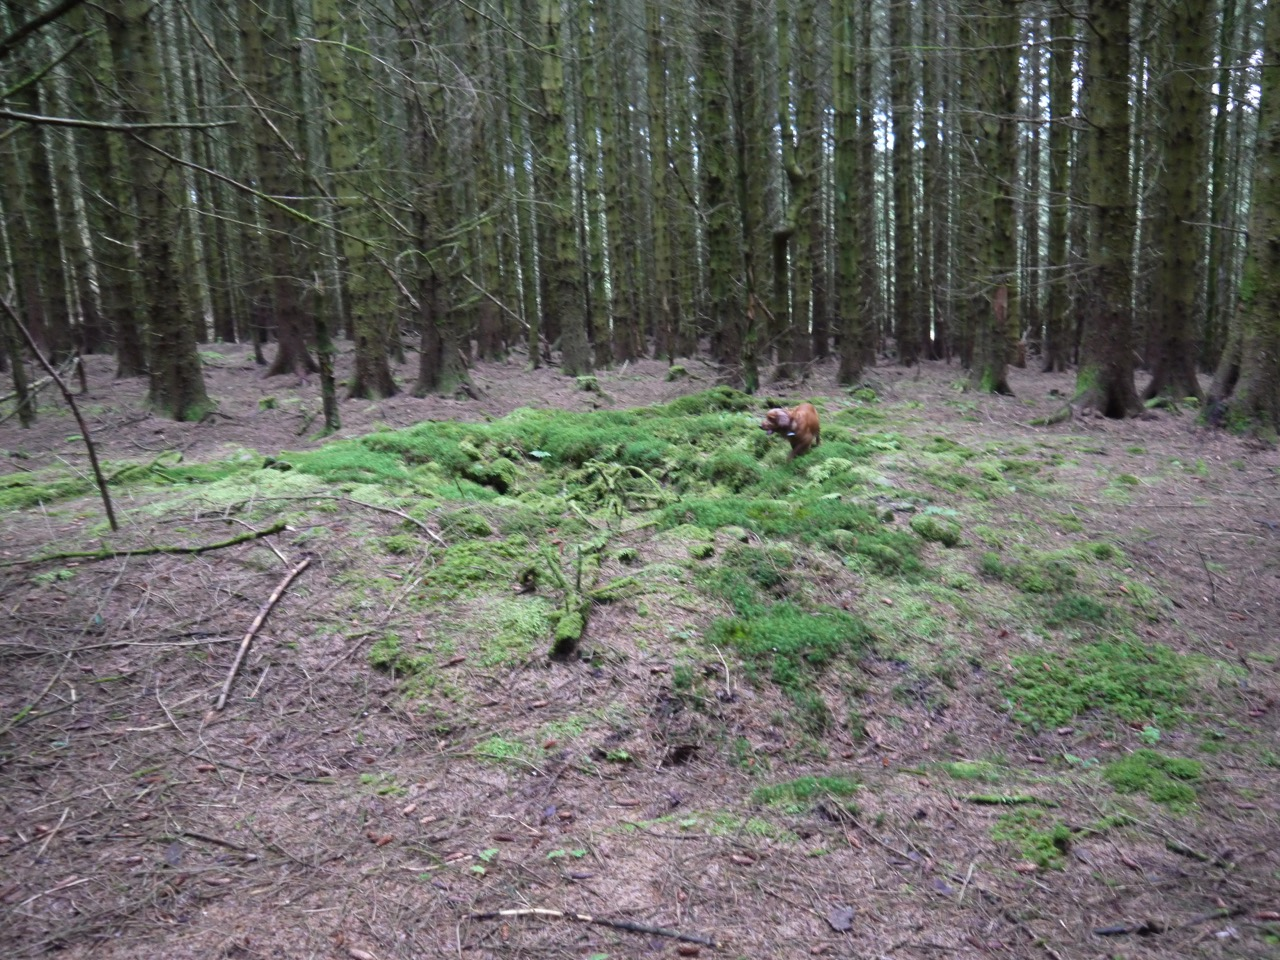 Remains of the second cairn in the forest